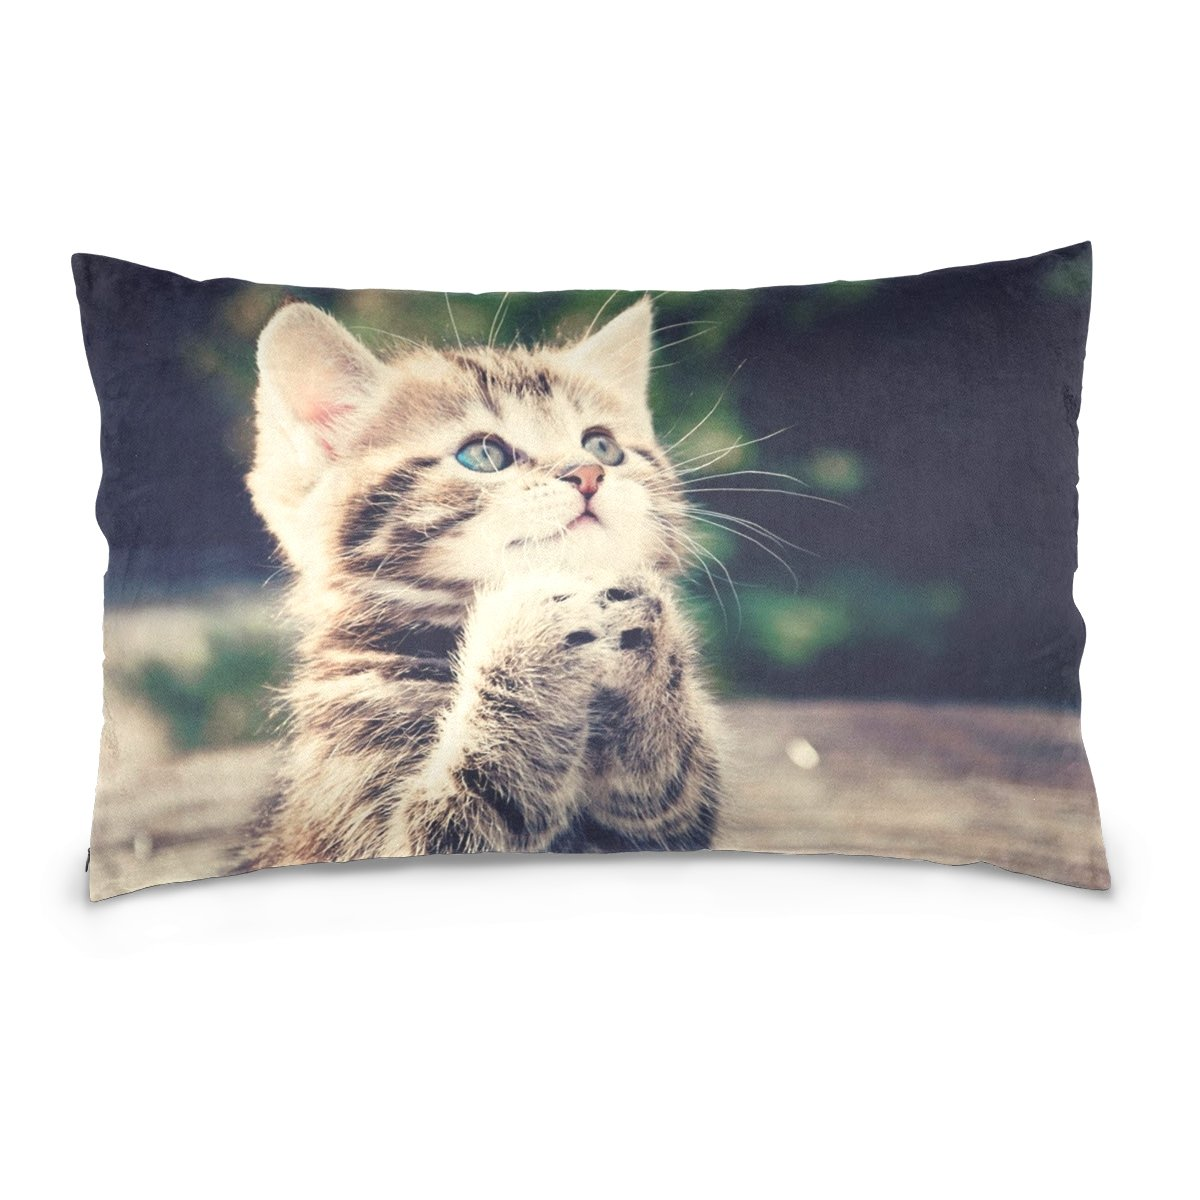 Pillow Covers Pillow Protectors Bed Bug Dust Mite Resistant Standard Pillow Cases Cotton Sateen Allergy Proof Soft Quality Covers with Animals Praying Kitten Cat Pattern for Bedding